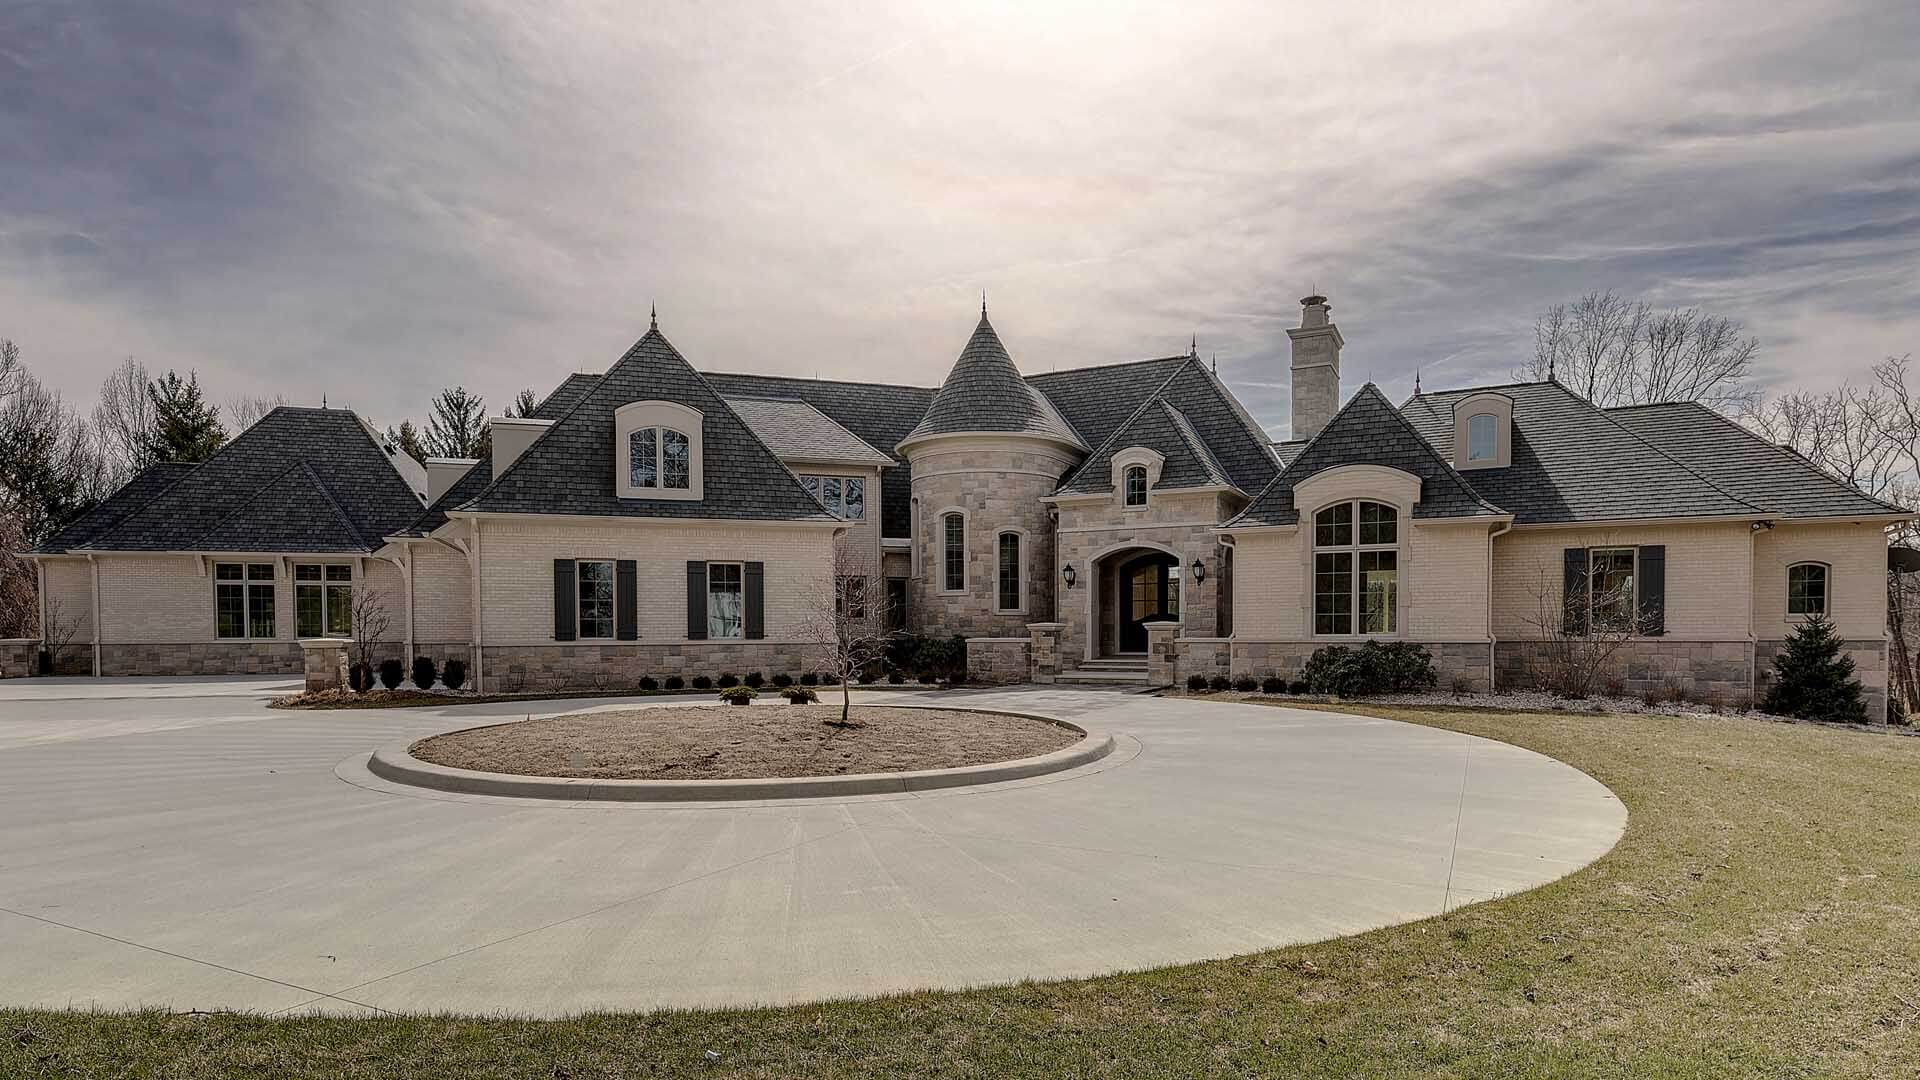 Ennis Custom Homes - Carmel, IN Luxury Home Builders - Front View of Home